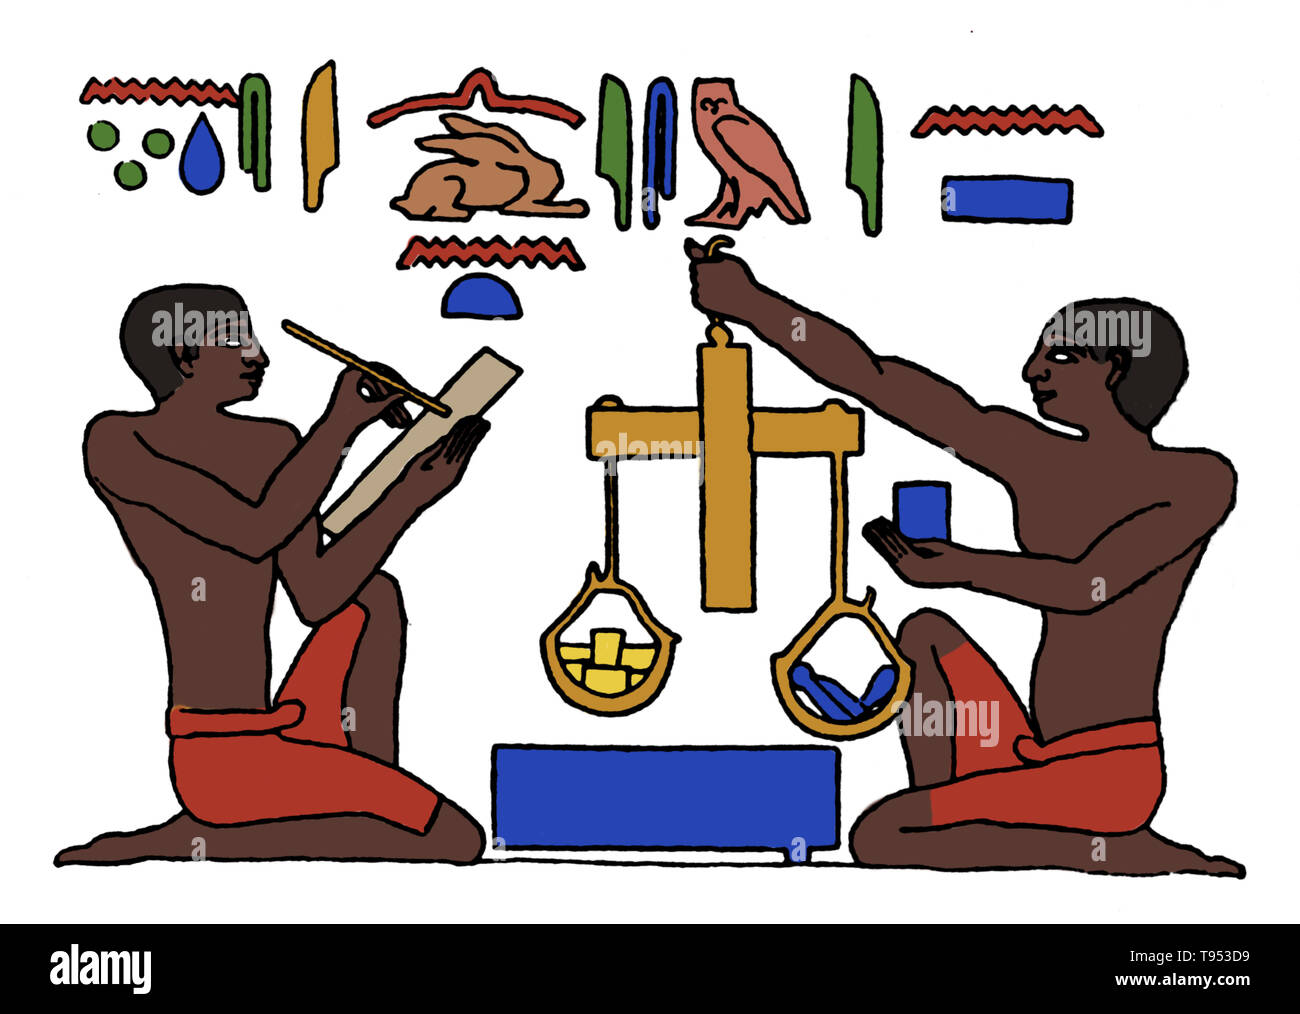 Weights and measures were among the earliest tools invented by man. Early Babylonian and Egyptian records, and the Bible, indicate that length was first measured with the forearm, hand, or finger and that time was measured by the periods of the sun, moon, and other heavenly bodies. When it was necessary to compare the capacities of containers such as gourds or clay or metal vessels, they were filled with plant seeds that were then counted to measure the volumes. With the development of scales as a means for weighing, seeds and stones served as standards. As societies evolved, measurements beca - Stock Image